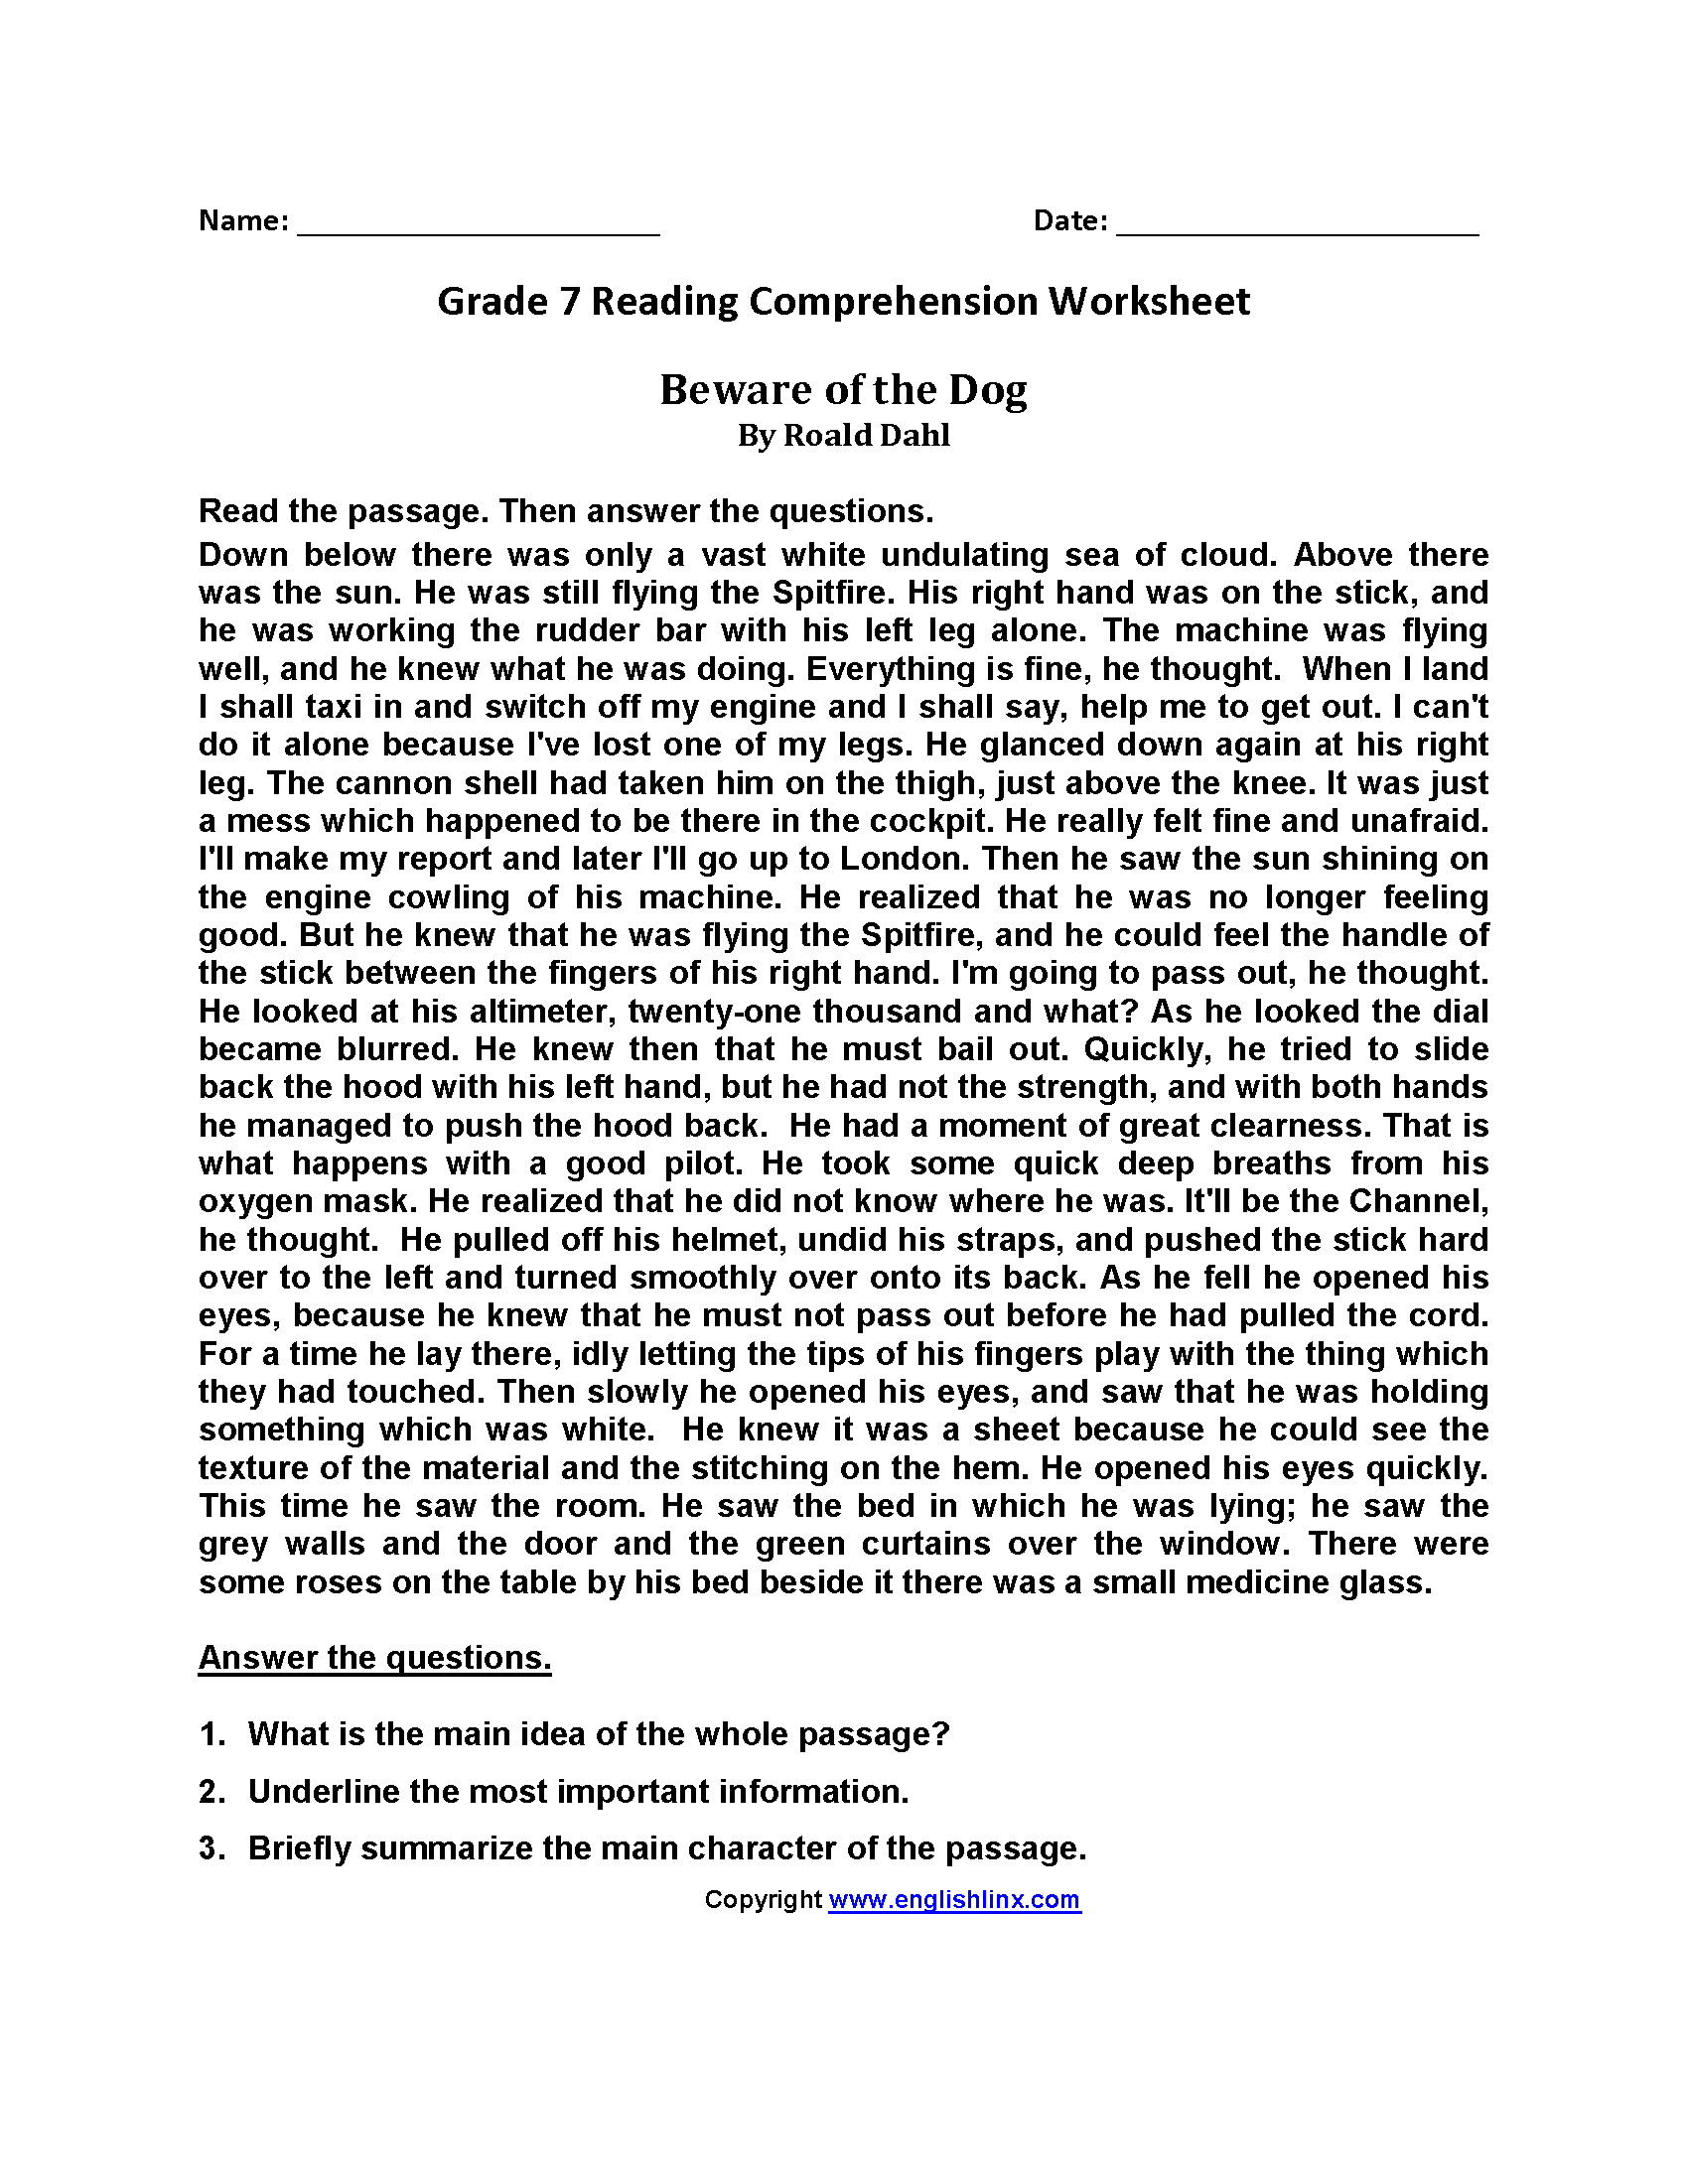 7th grade ela practice worksheets together with Reading  prehension Worksheets Grade And Fiction 7th W as well Seventh Grade Reading Worksheets   Englishlinx   Board   Reading as well  together with How Oceans Affect Weather<br>Seventh Grade Reading Worksheets also  together with Pee Free Printable Worksheets Reading Prehension – Worksheet furthermore  as well free 7th grade reading  prehension worksheets as well reading  prehension worksheets 7th grade also Beware of the Dog<br>Seventh Grade Reading Worksheets   z   Reading together with 7th grade ela practice worksheets furthermore Grade Science Reading  prehension Worksheets Writing Science also 6th Grade Reading  prehension Worksheets Pdf Fresh ⇨ 24 6th additionally  additionally reading  prehension worksheets 7th grade. on reading comprehension worksheets 7th grade